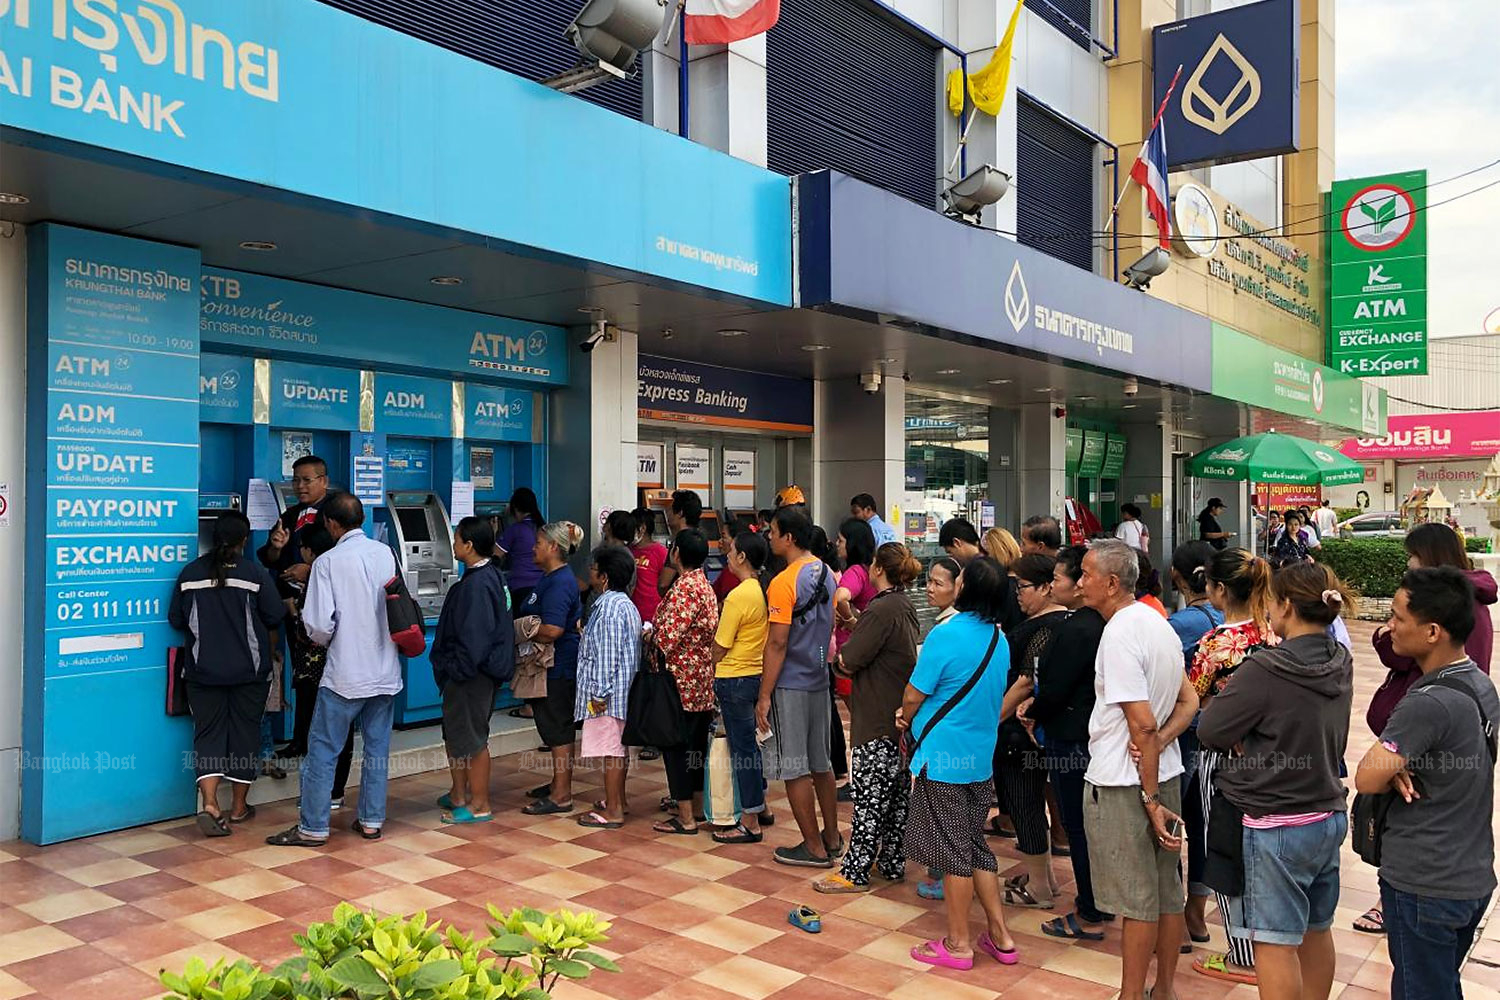 Welfare cardholders queue up to get cash at a Krungthai Bank ATM in Pathum Thani in December last year. (Photo by Sarot Meksophawannakul)